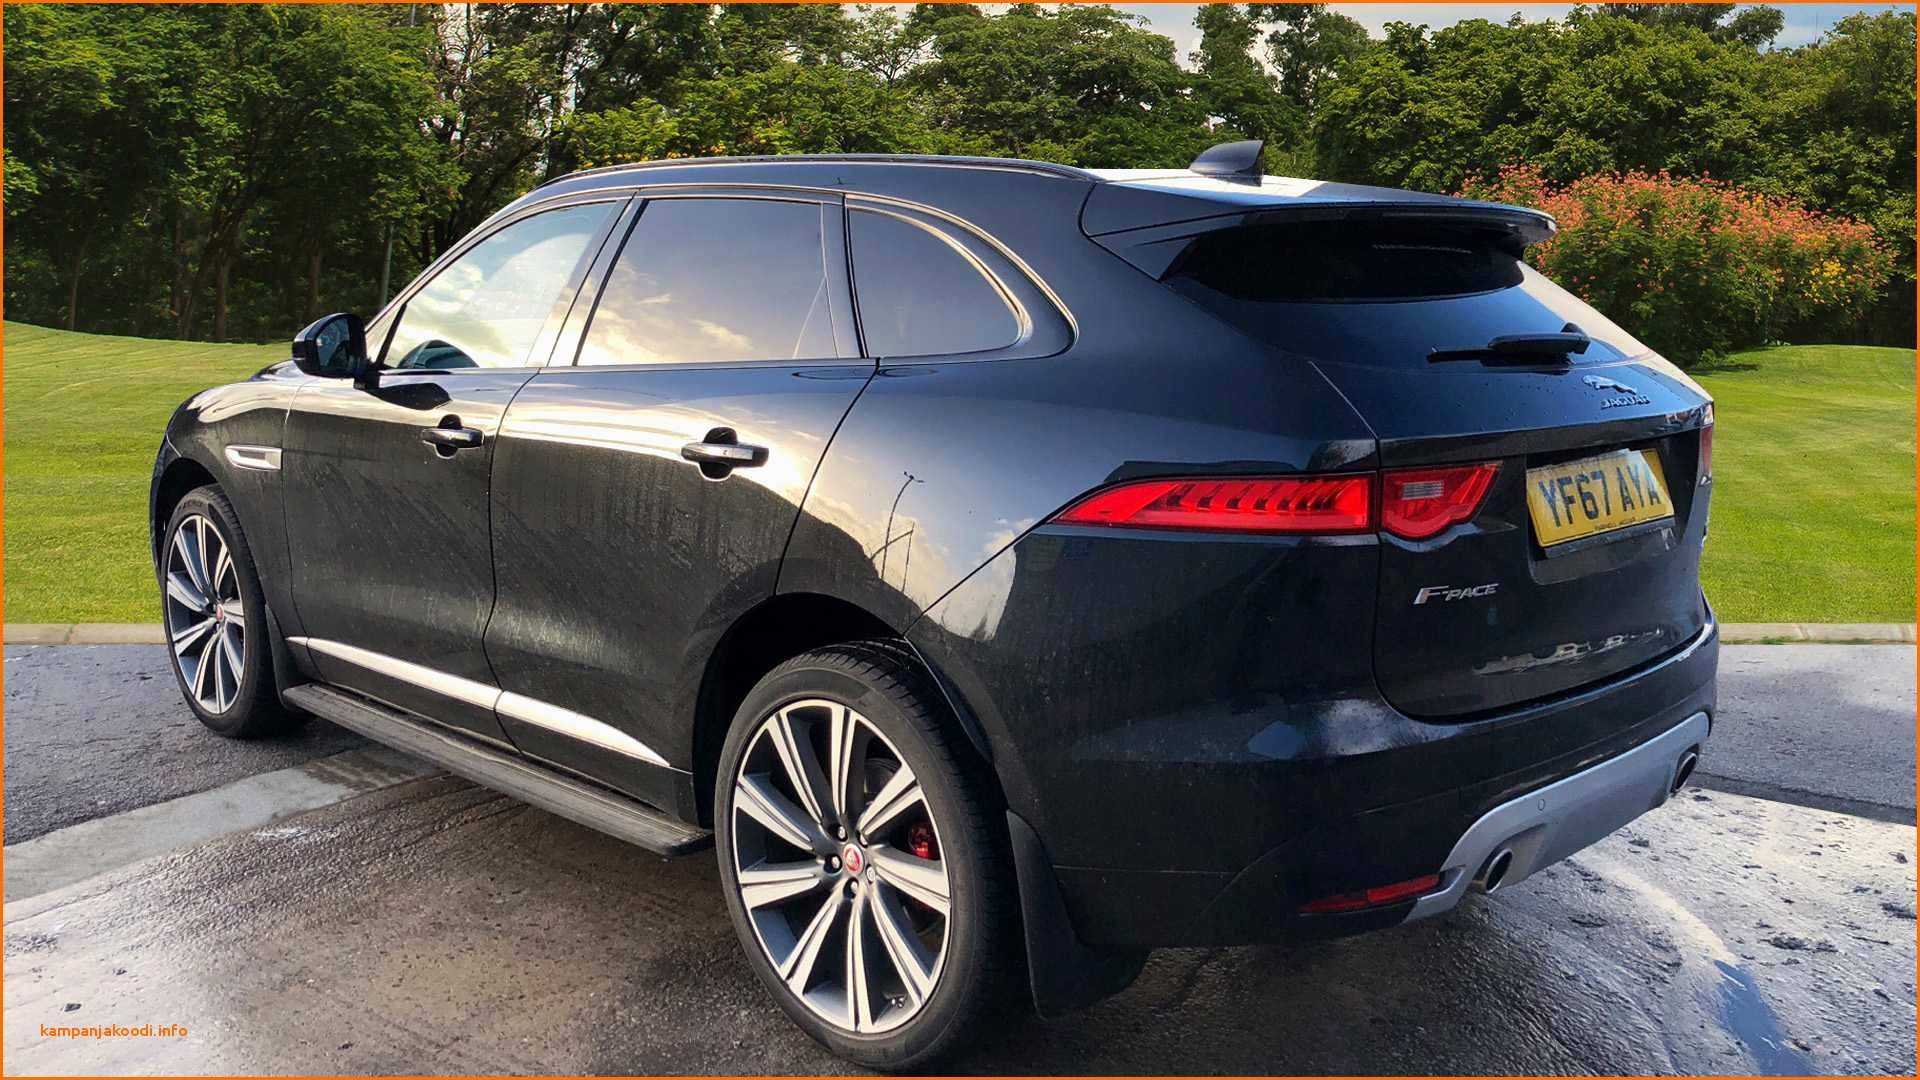 Vehicle Service Contract Vehicle Finance Agreement New Used Jaguar F Pace 3 0d V6 S 5dr